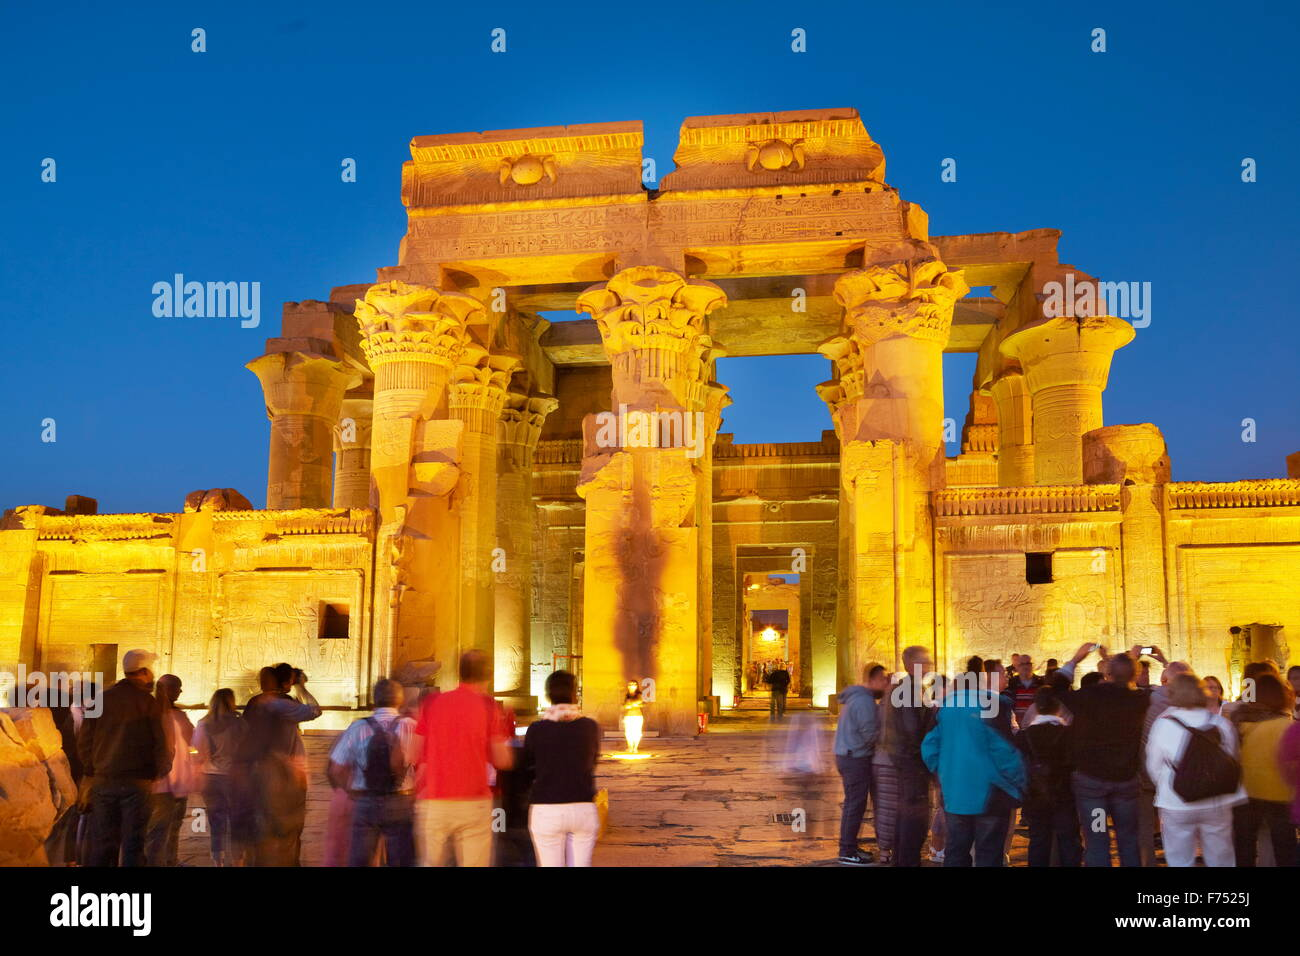 Egypt - Kom Ombo, Temple of Sobek, a Crocodile Temple by night Stock Photo